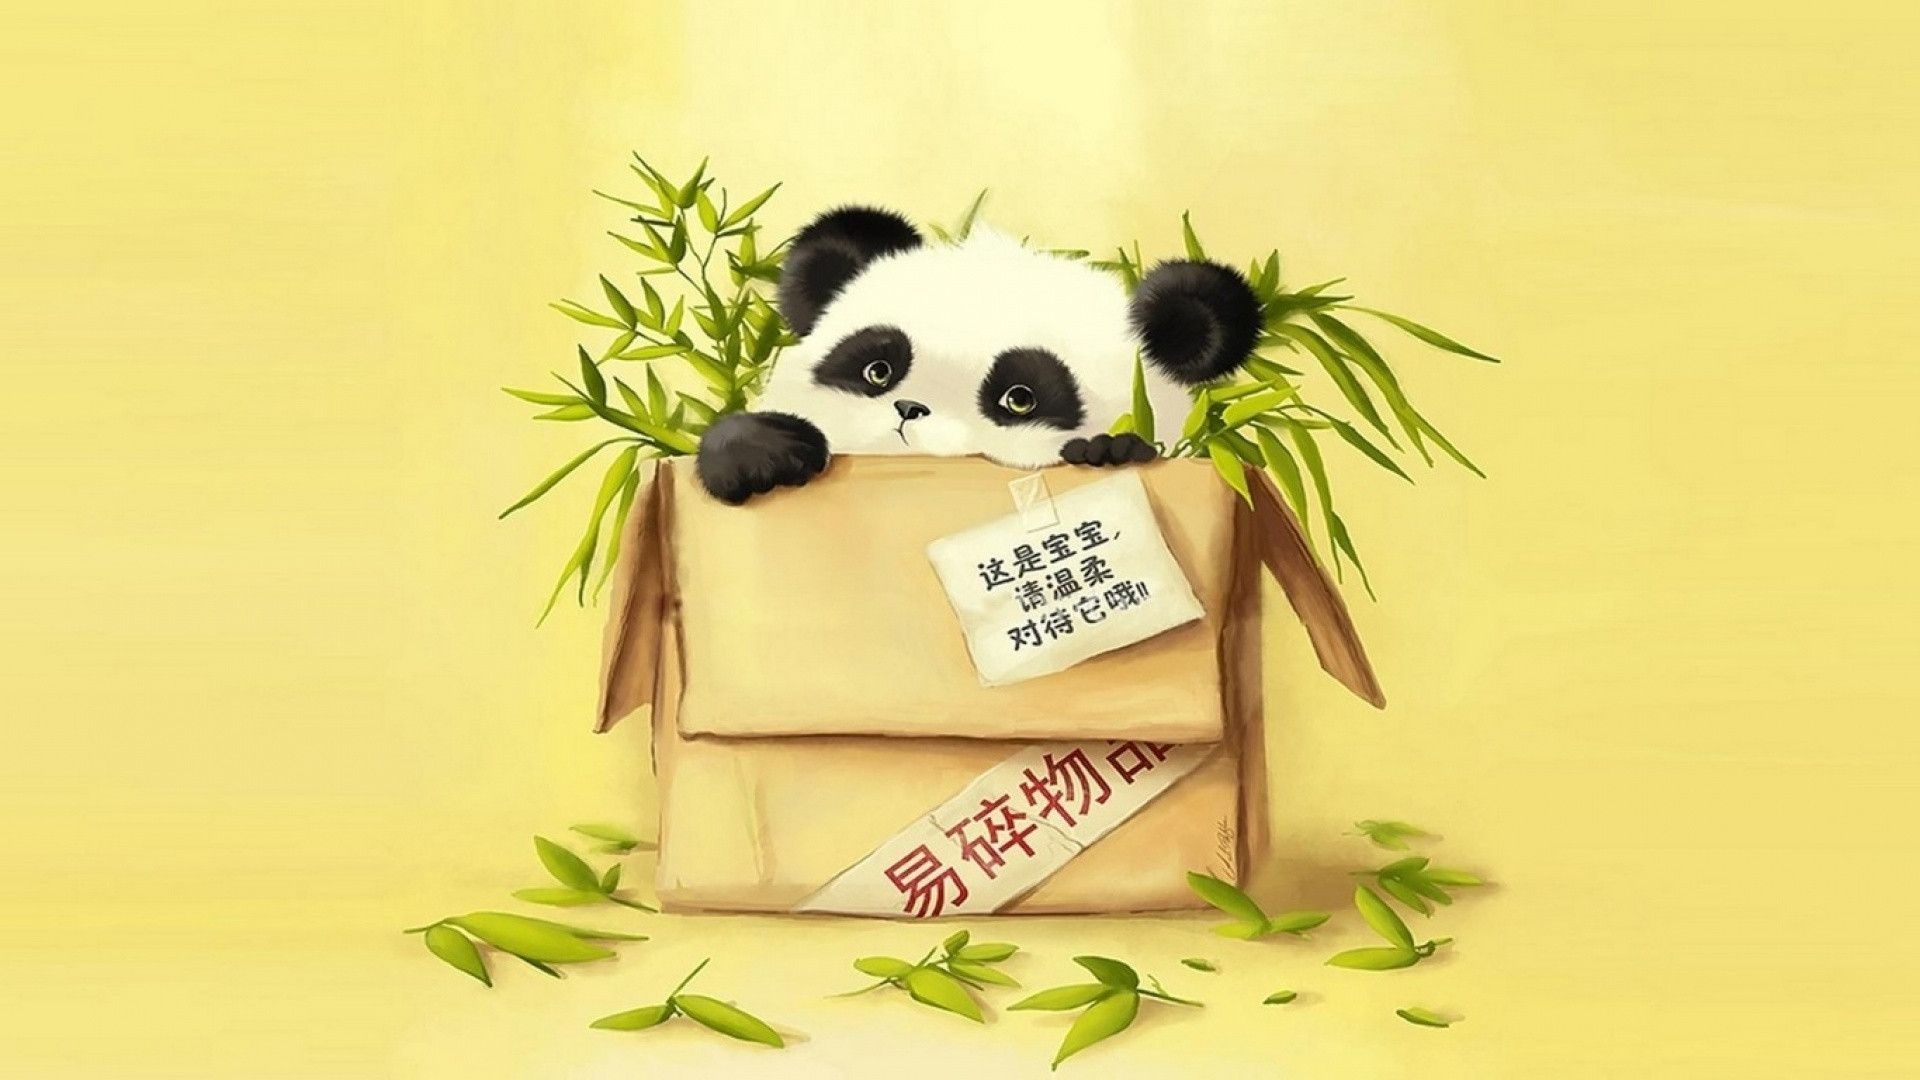 Cartoon Panda Wallpapers - Wallpaper Cave